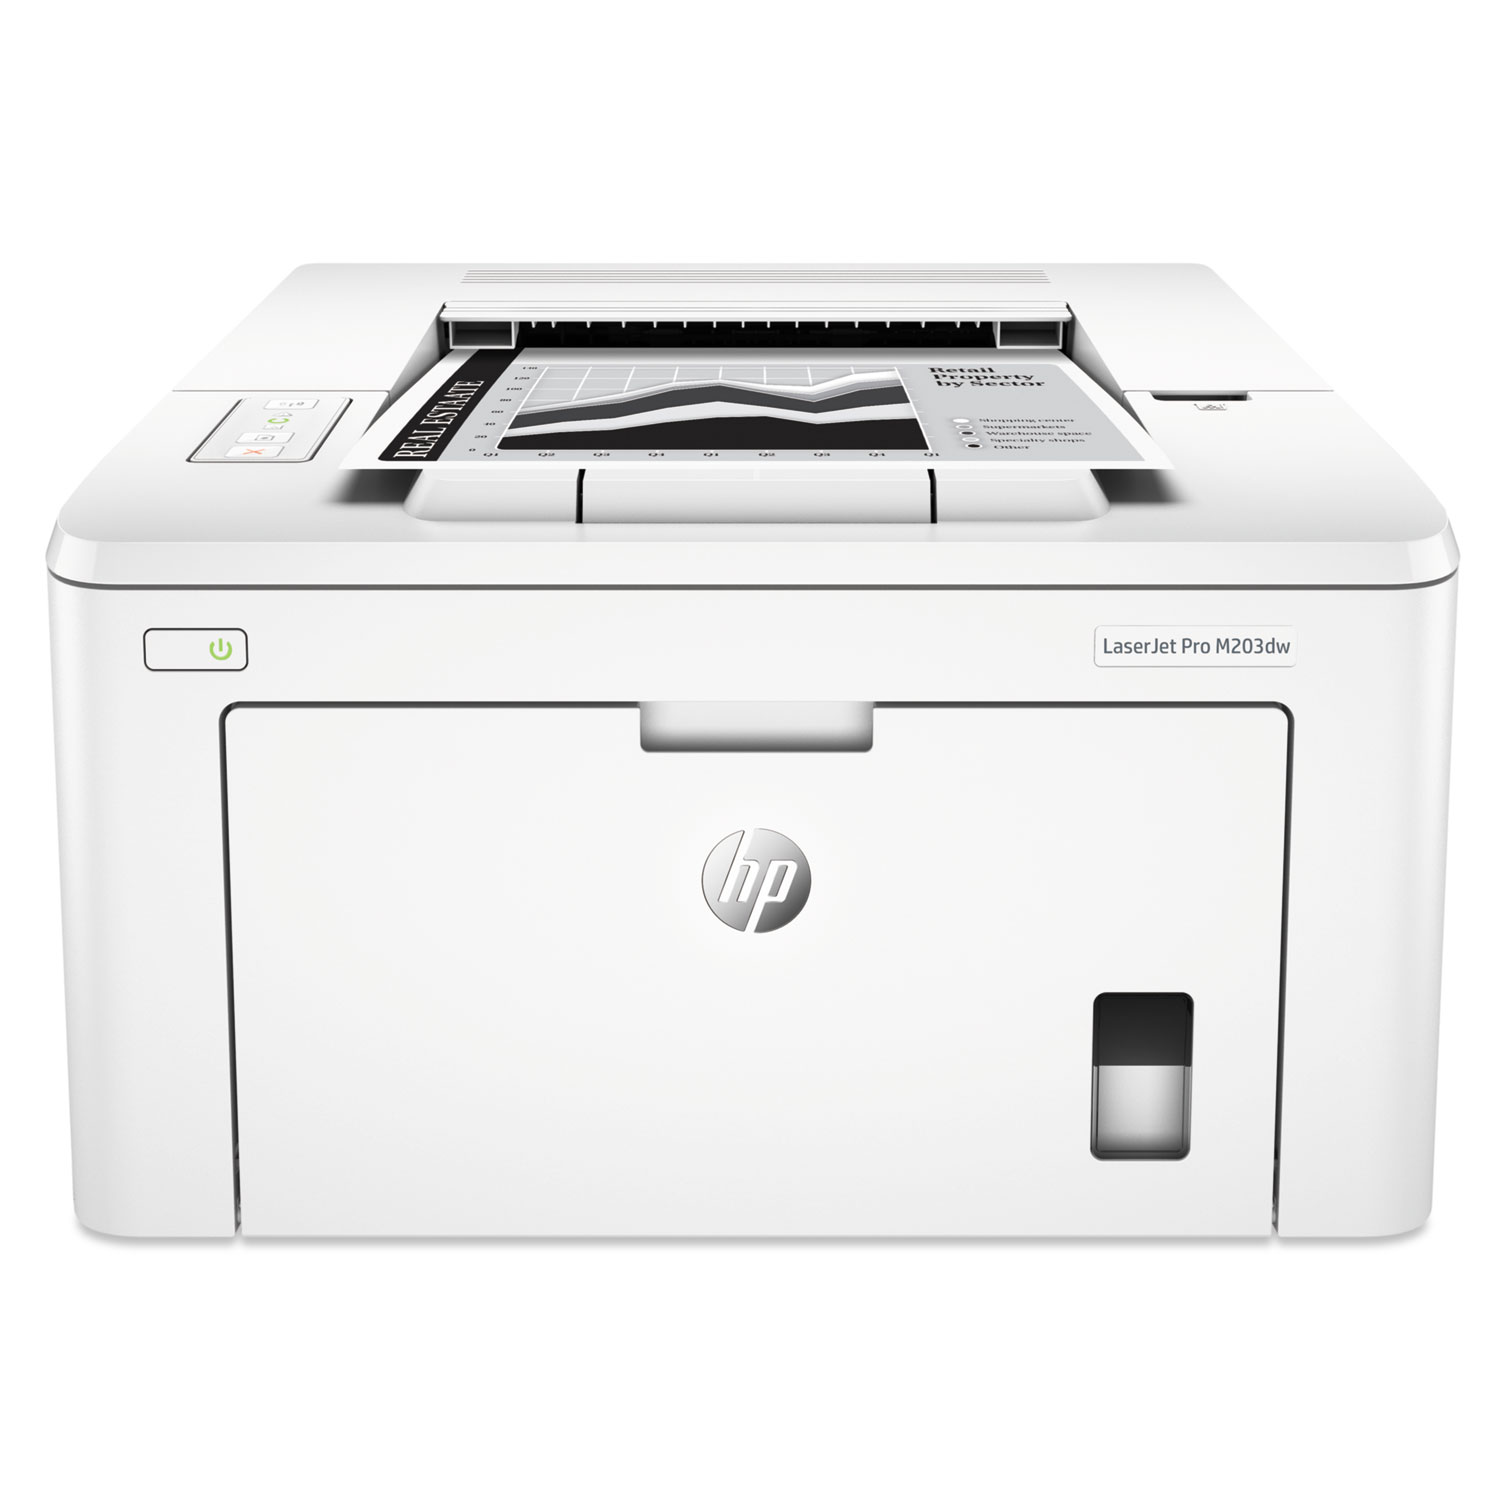 LaserJet Pro M203dw Wireless Laser Printer